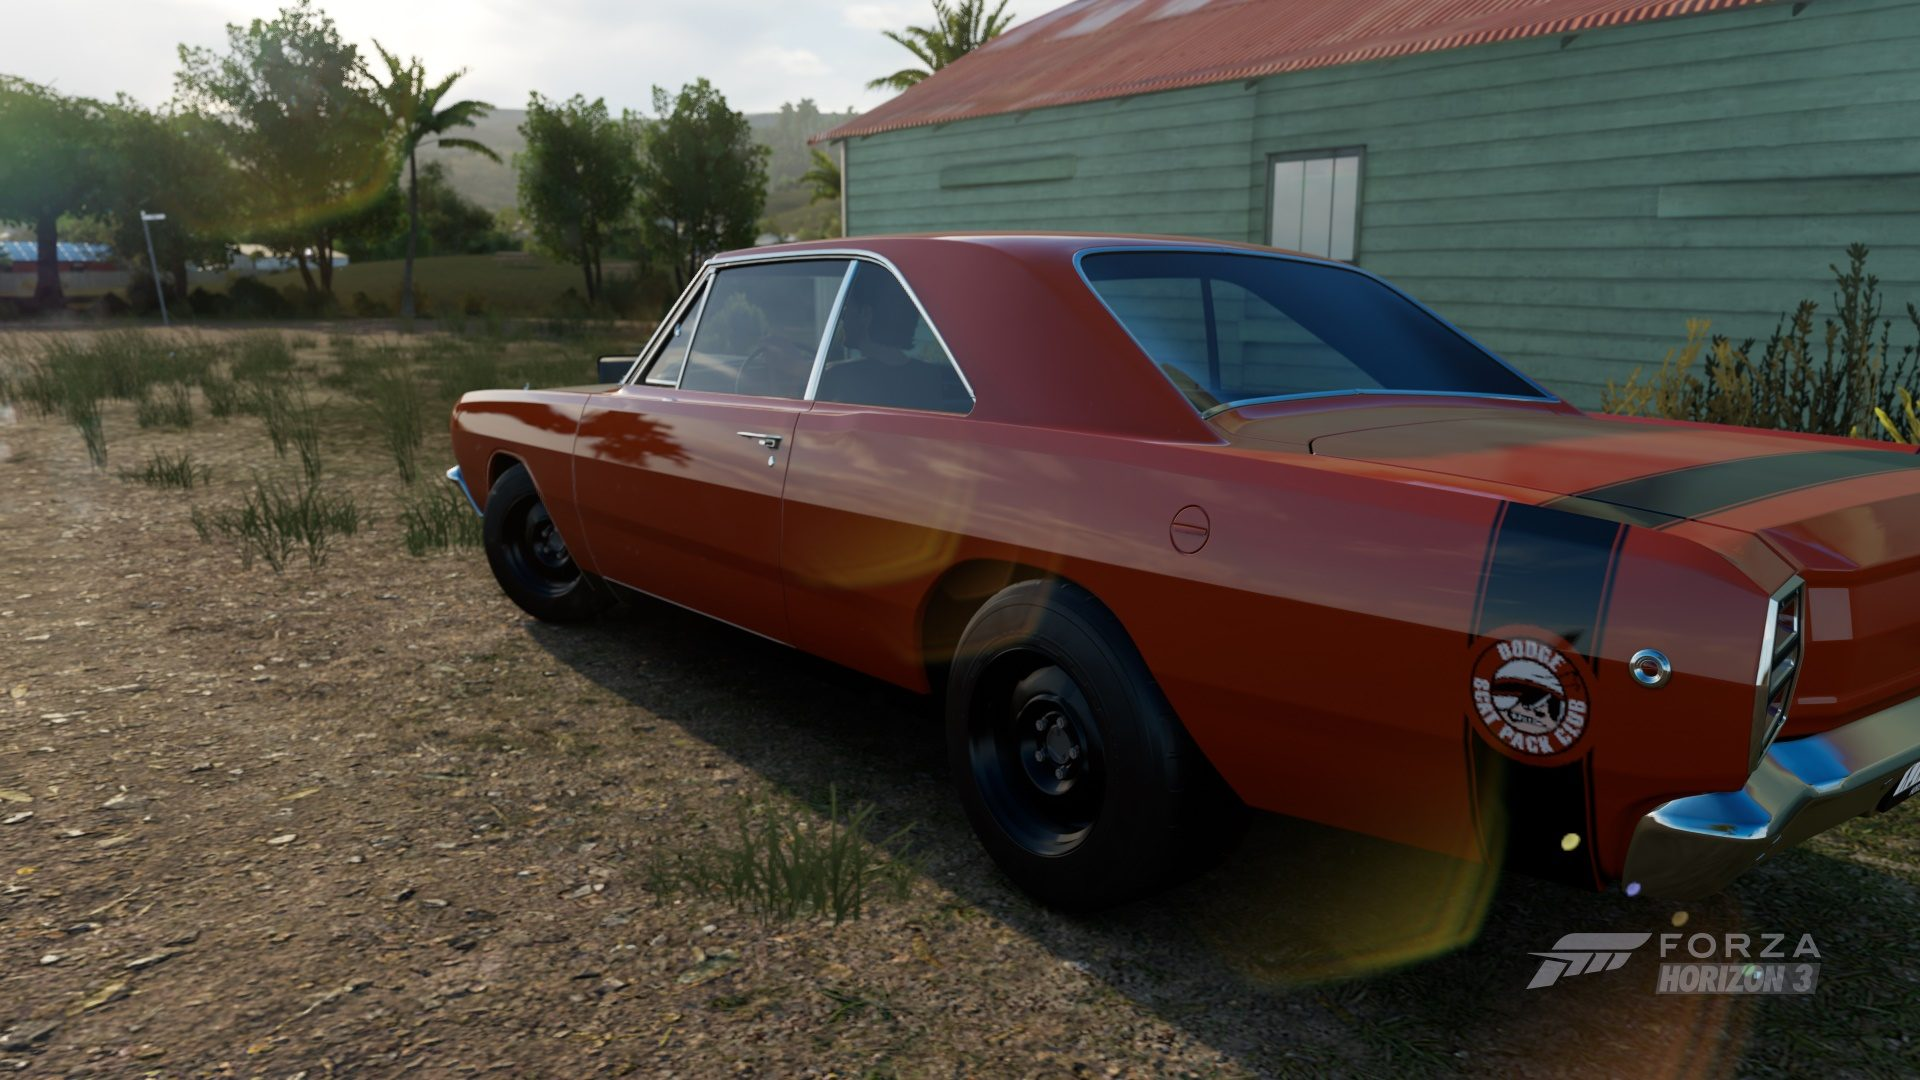 Forza Horizon 3 - Show off your paints! | Page 5